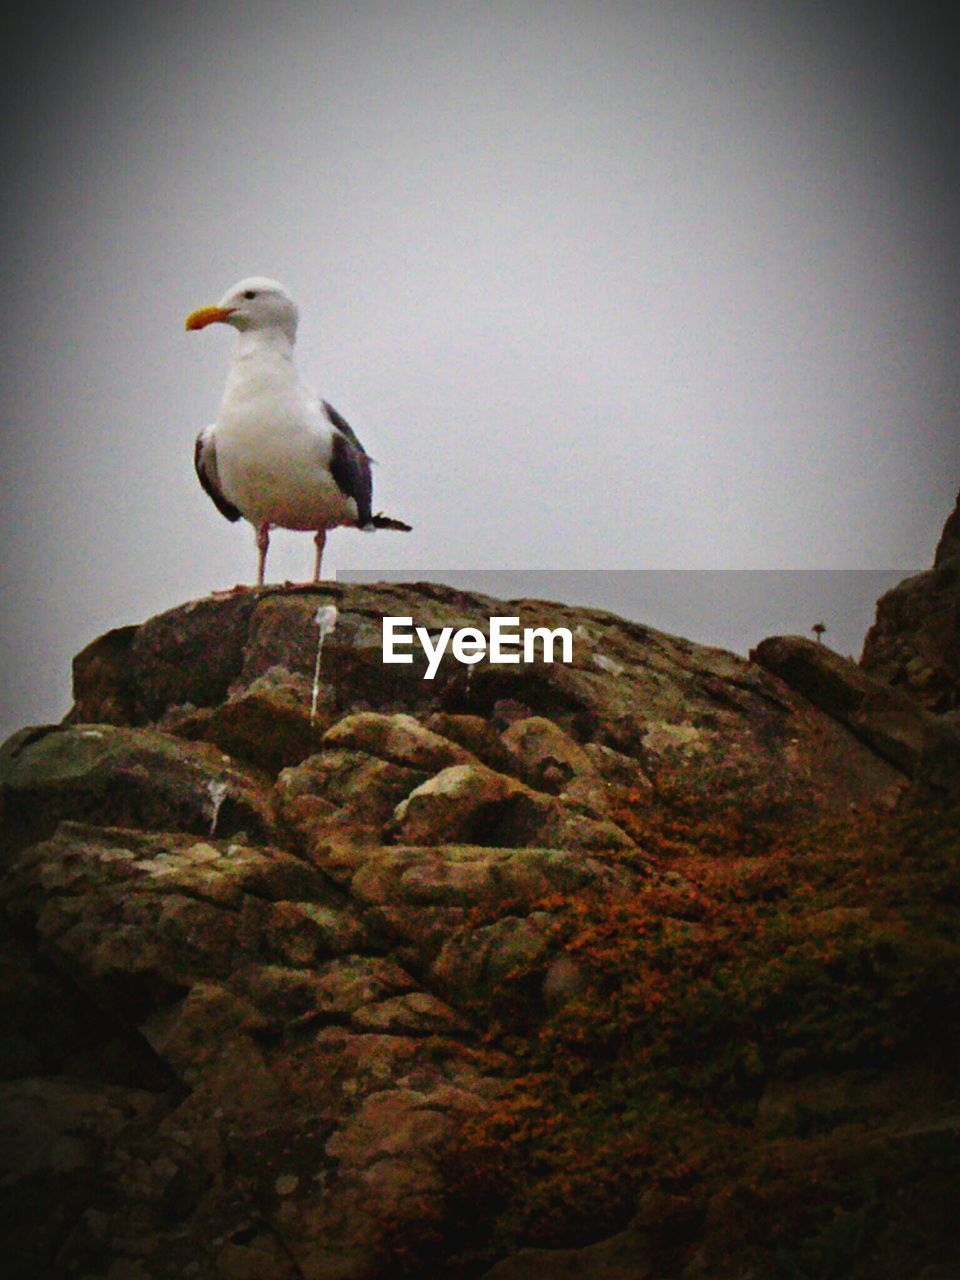 bird, animal themes, perching, animals in the wild, one animal, rock - object, no people, day, clear sky, outdoors, low angle view, animal wildlife, seagull, nature, full length, beauty in nature, close-up, sky